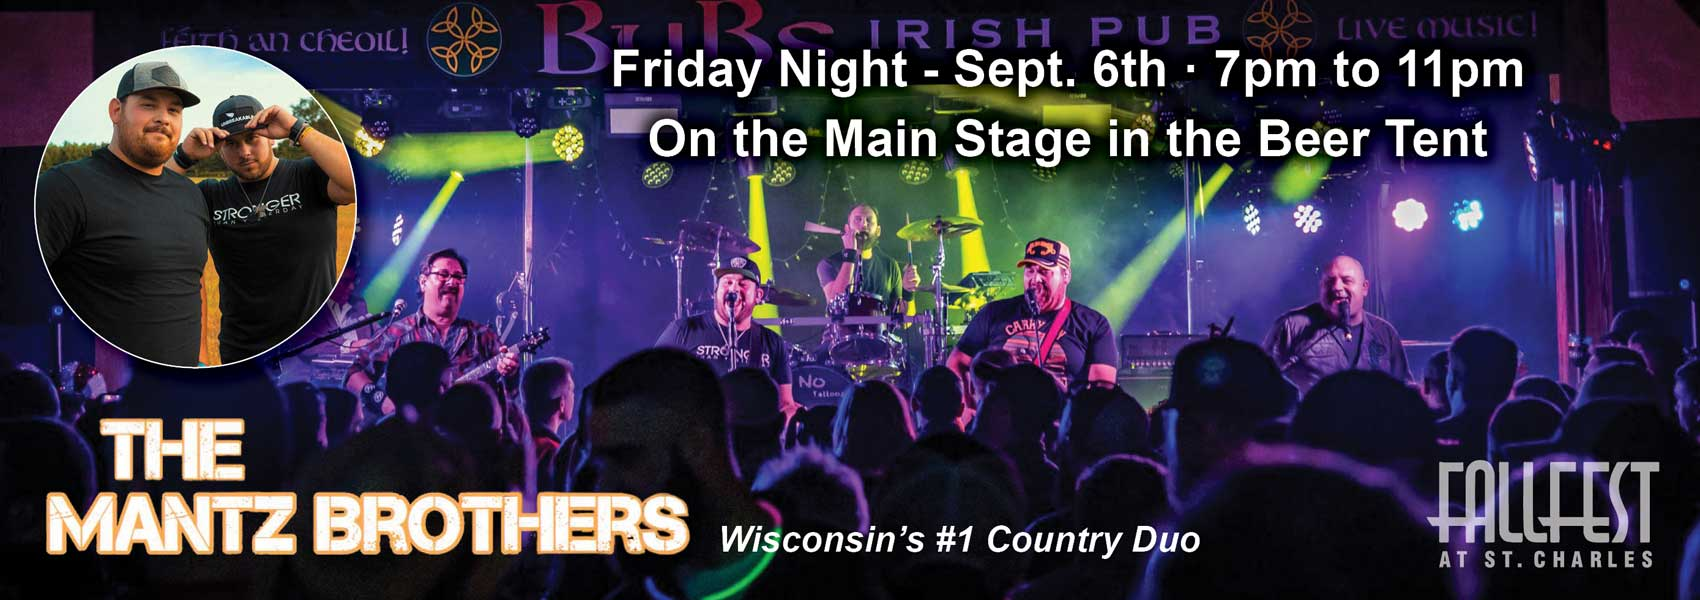 Mantz Brothers - Friday Main Beer Tent